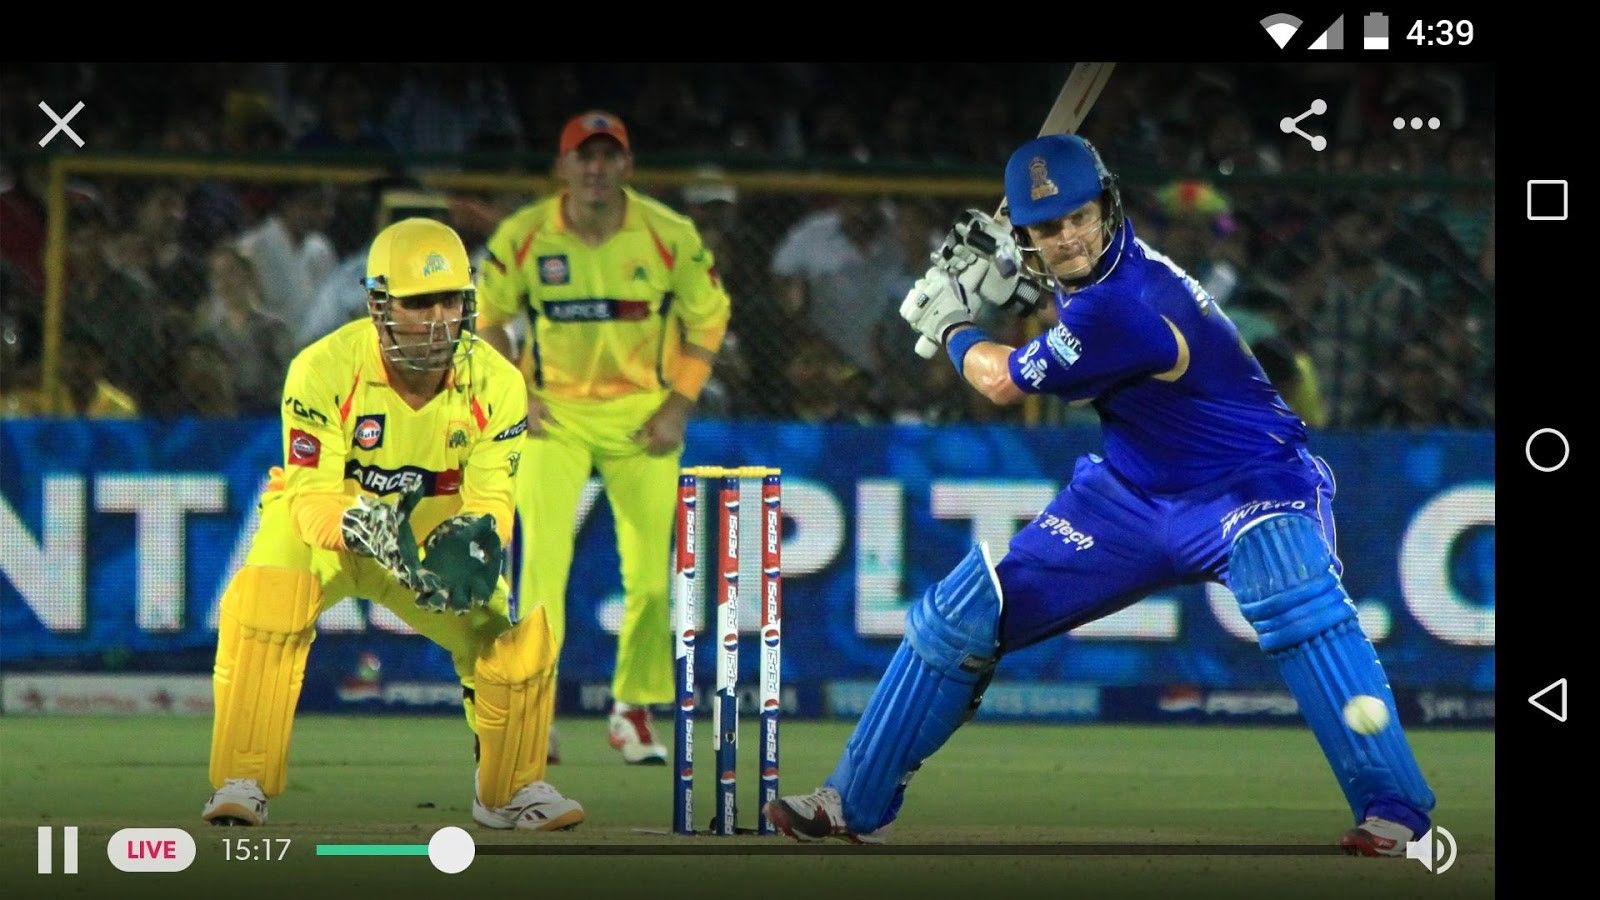 Live Match Hotstar Android App Watch Live Cricket Match Online Show Box